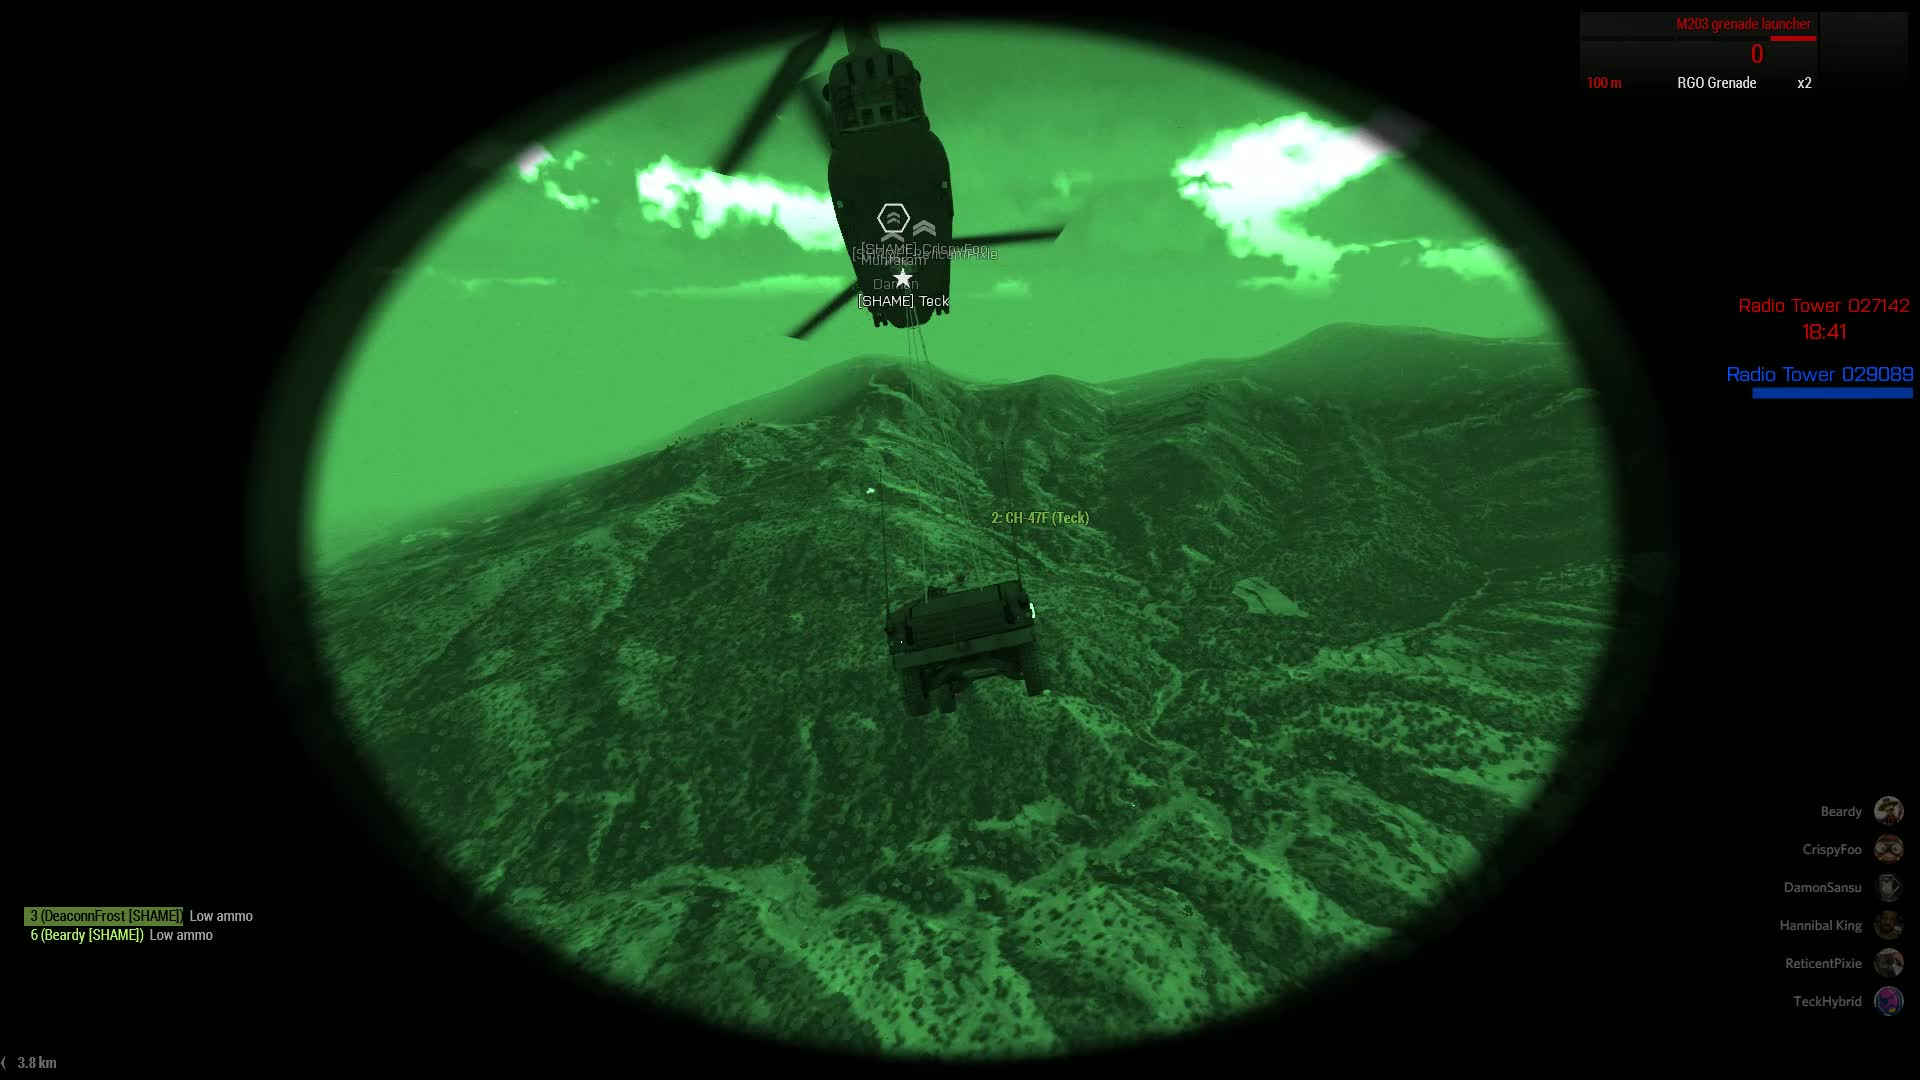 arma, launched, slingshot, ArmA 3 - Sling Shot Engaged GIFs